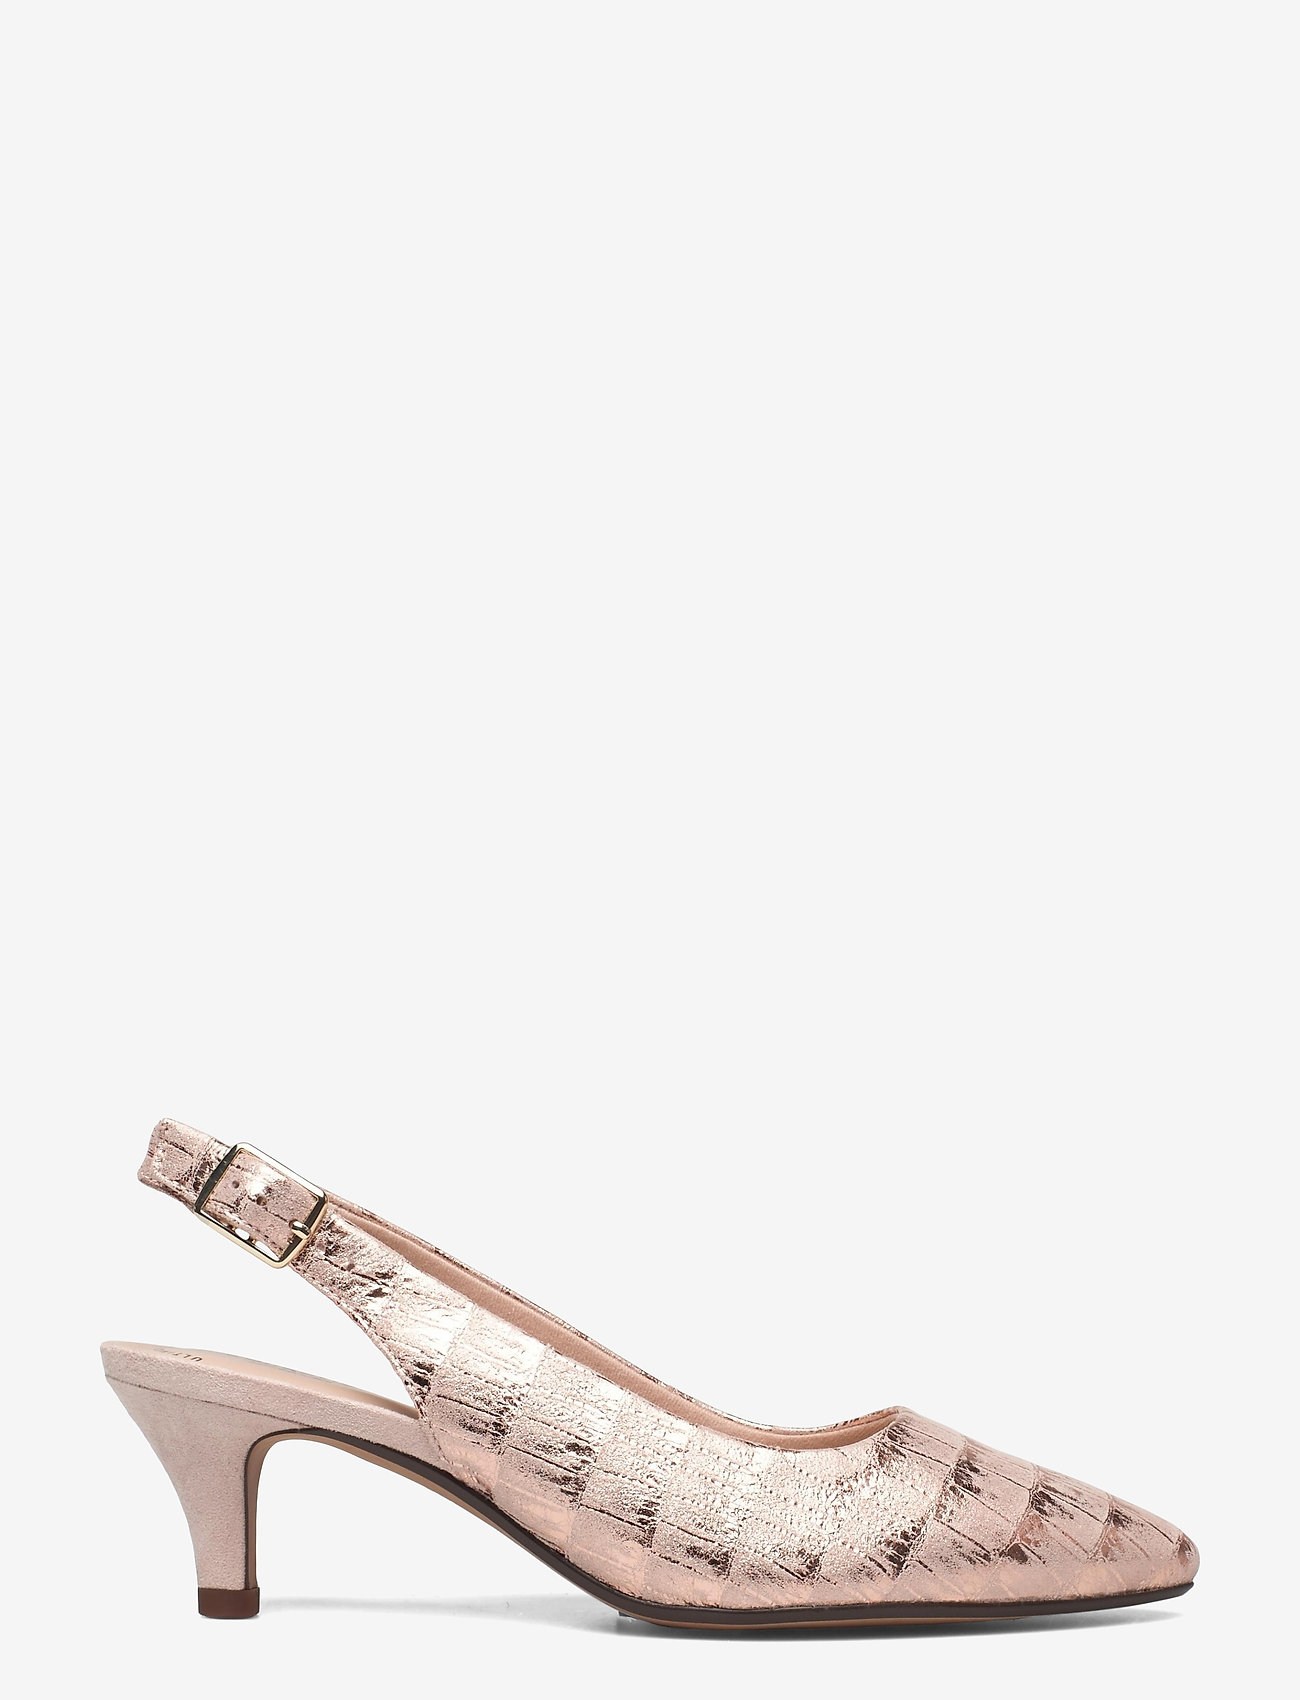 Clarks - Linvale Sondra - sling backs - rose - 1